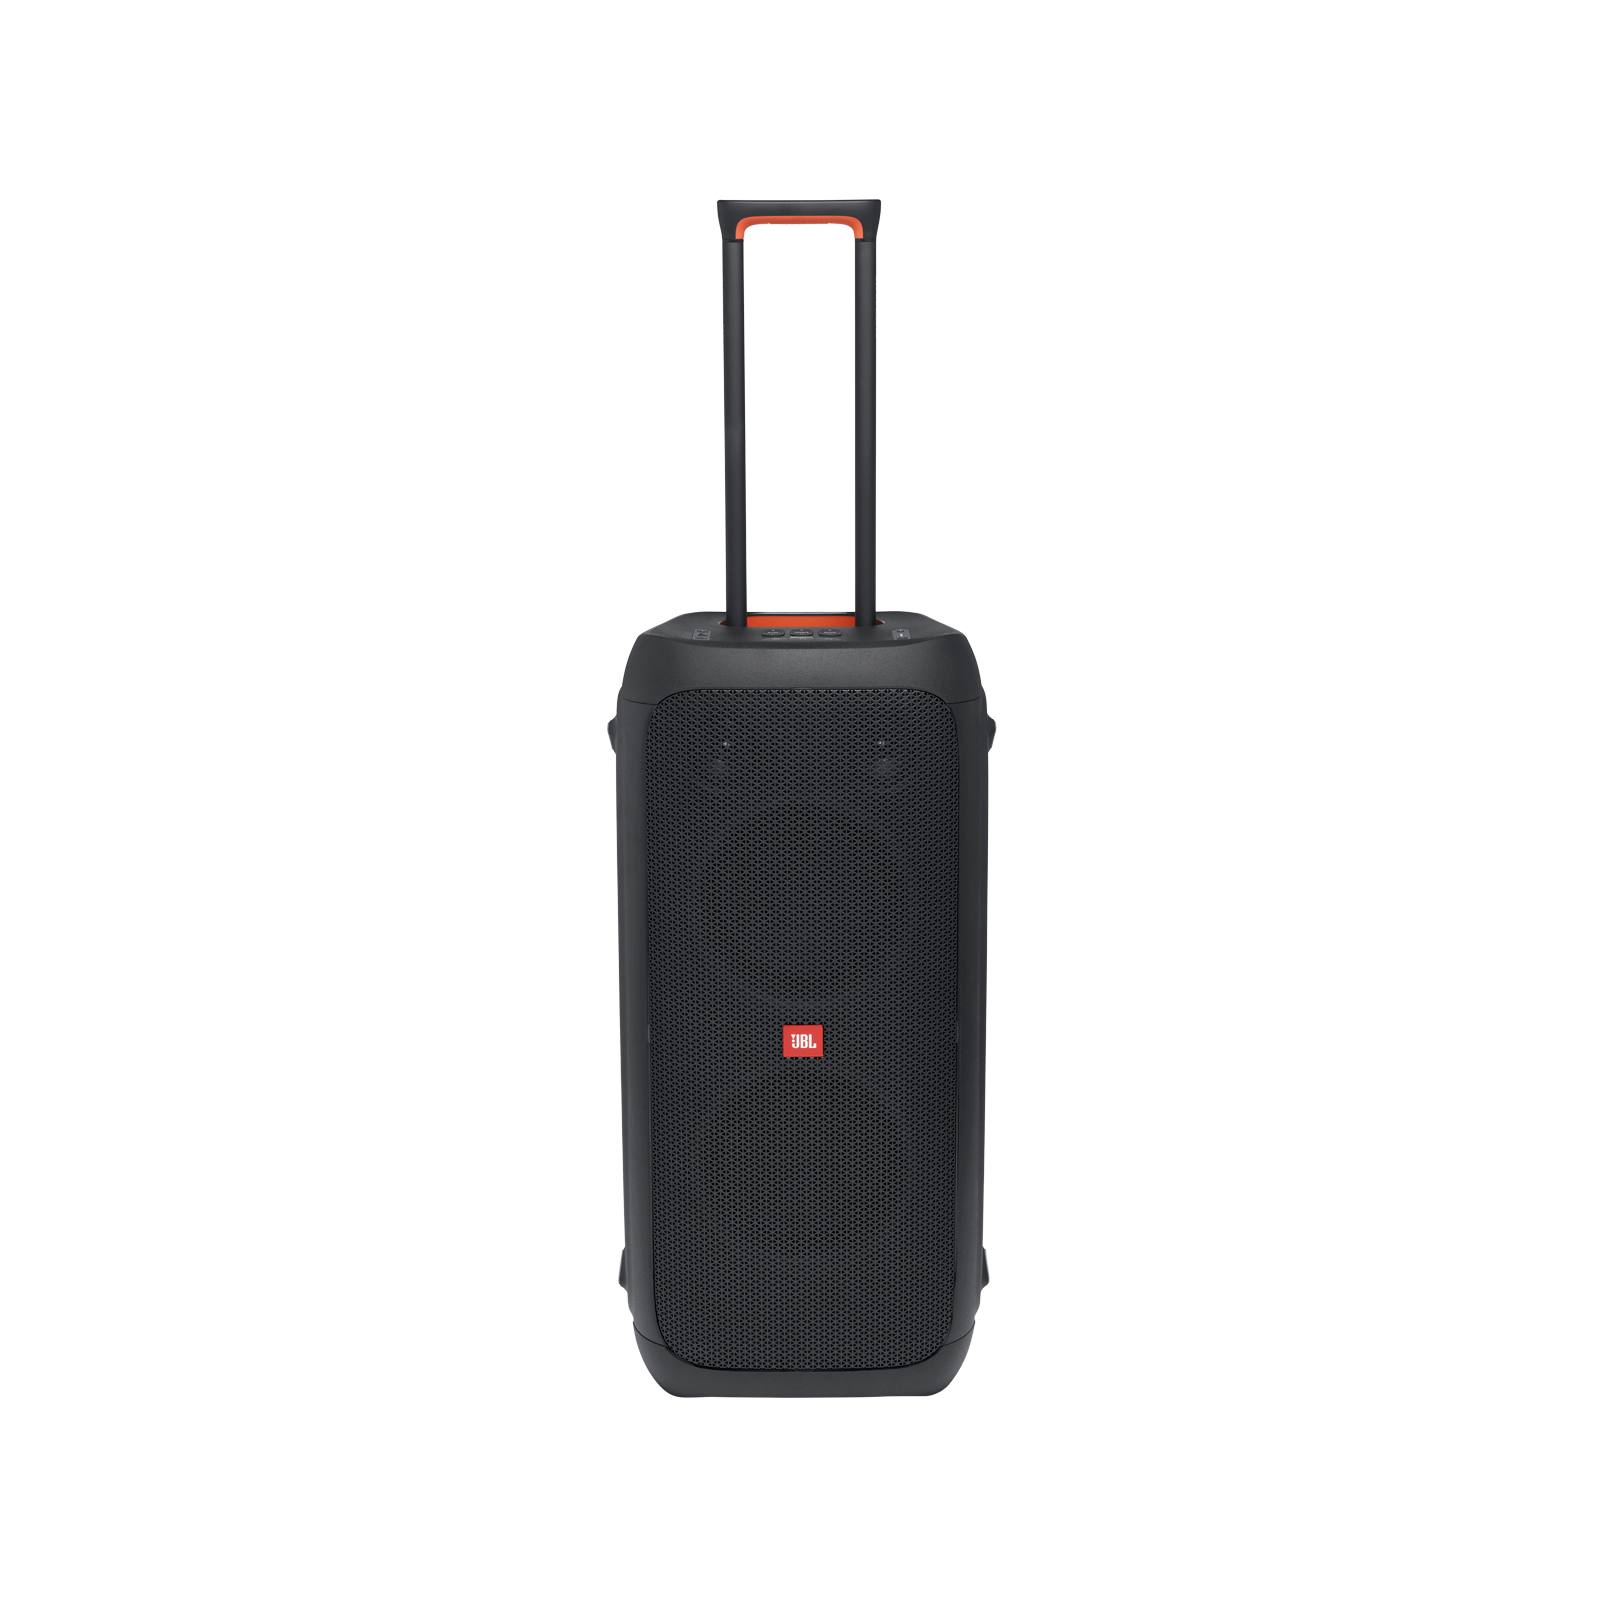 JBL Partybox 310 + Mic - Black - Portable party speaker with 240W powerful sound, built-in lightshow and wired mic - Front